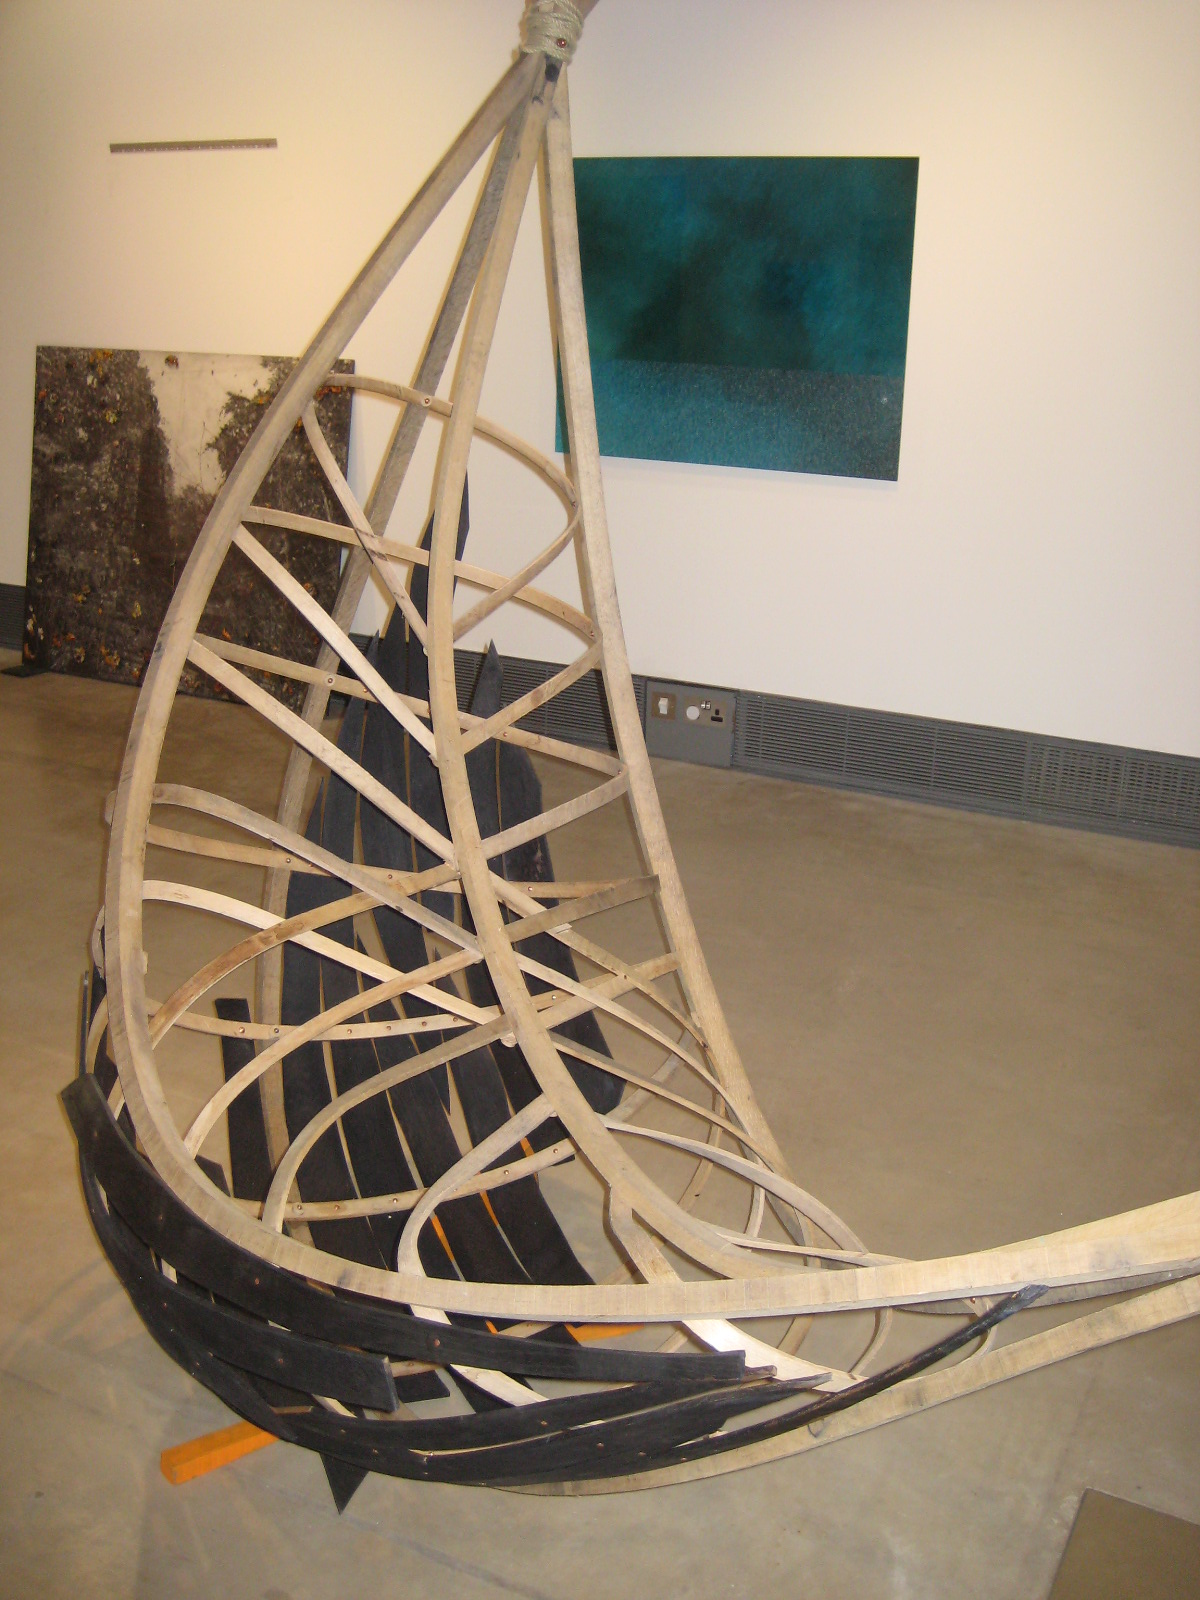 Boat by Beatrix Baker at the new exhibition at The Wilson.